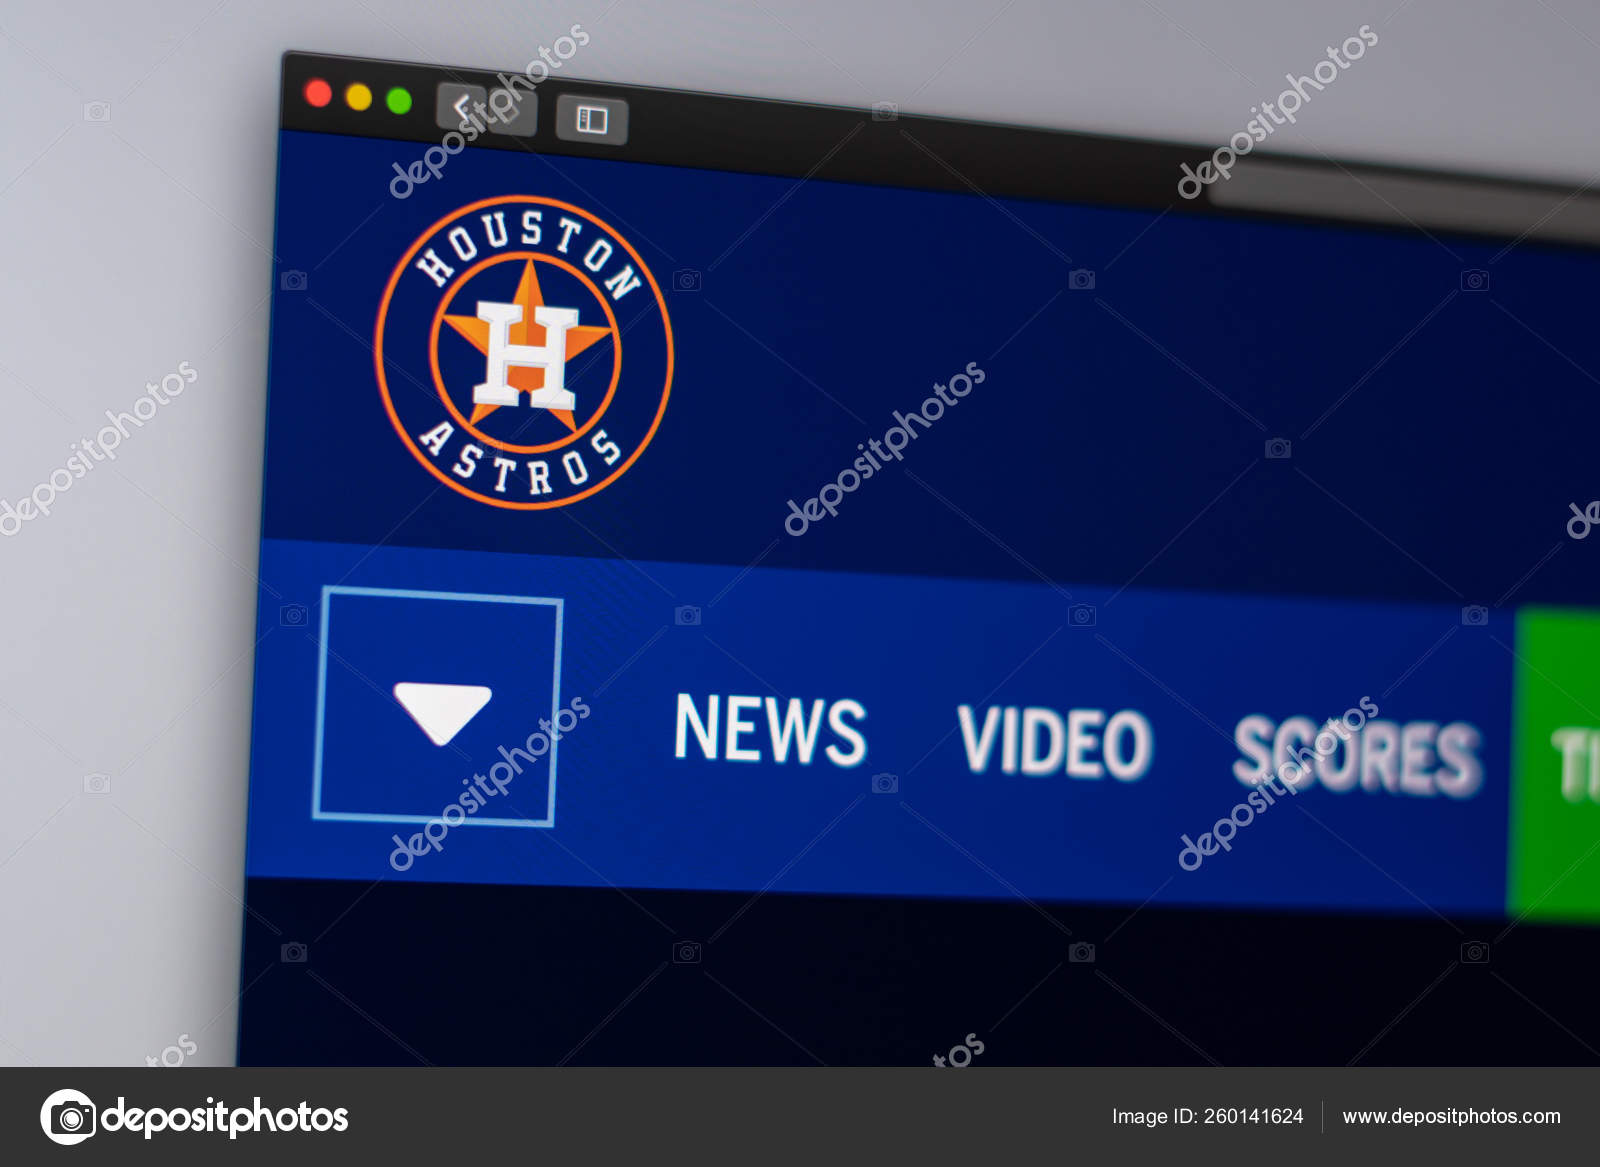 images houston astros miami